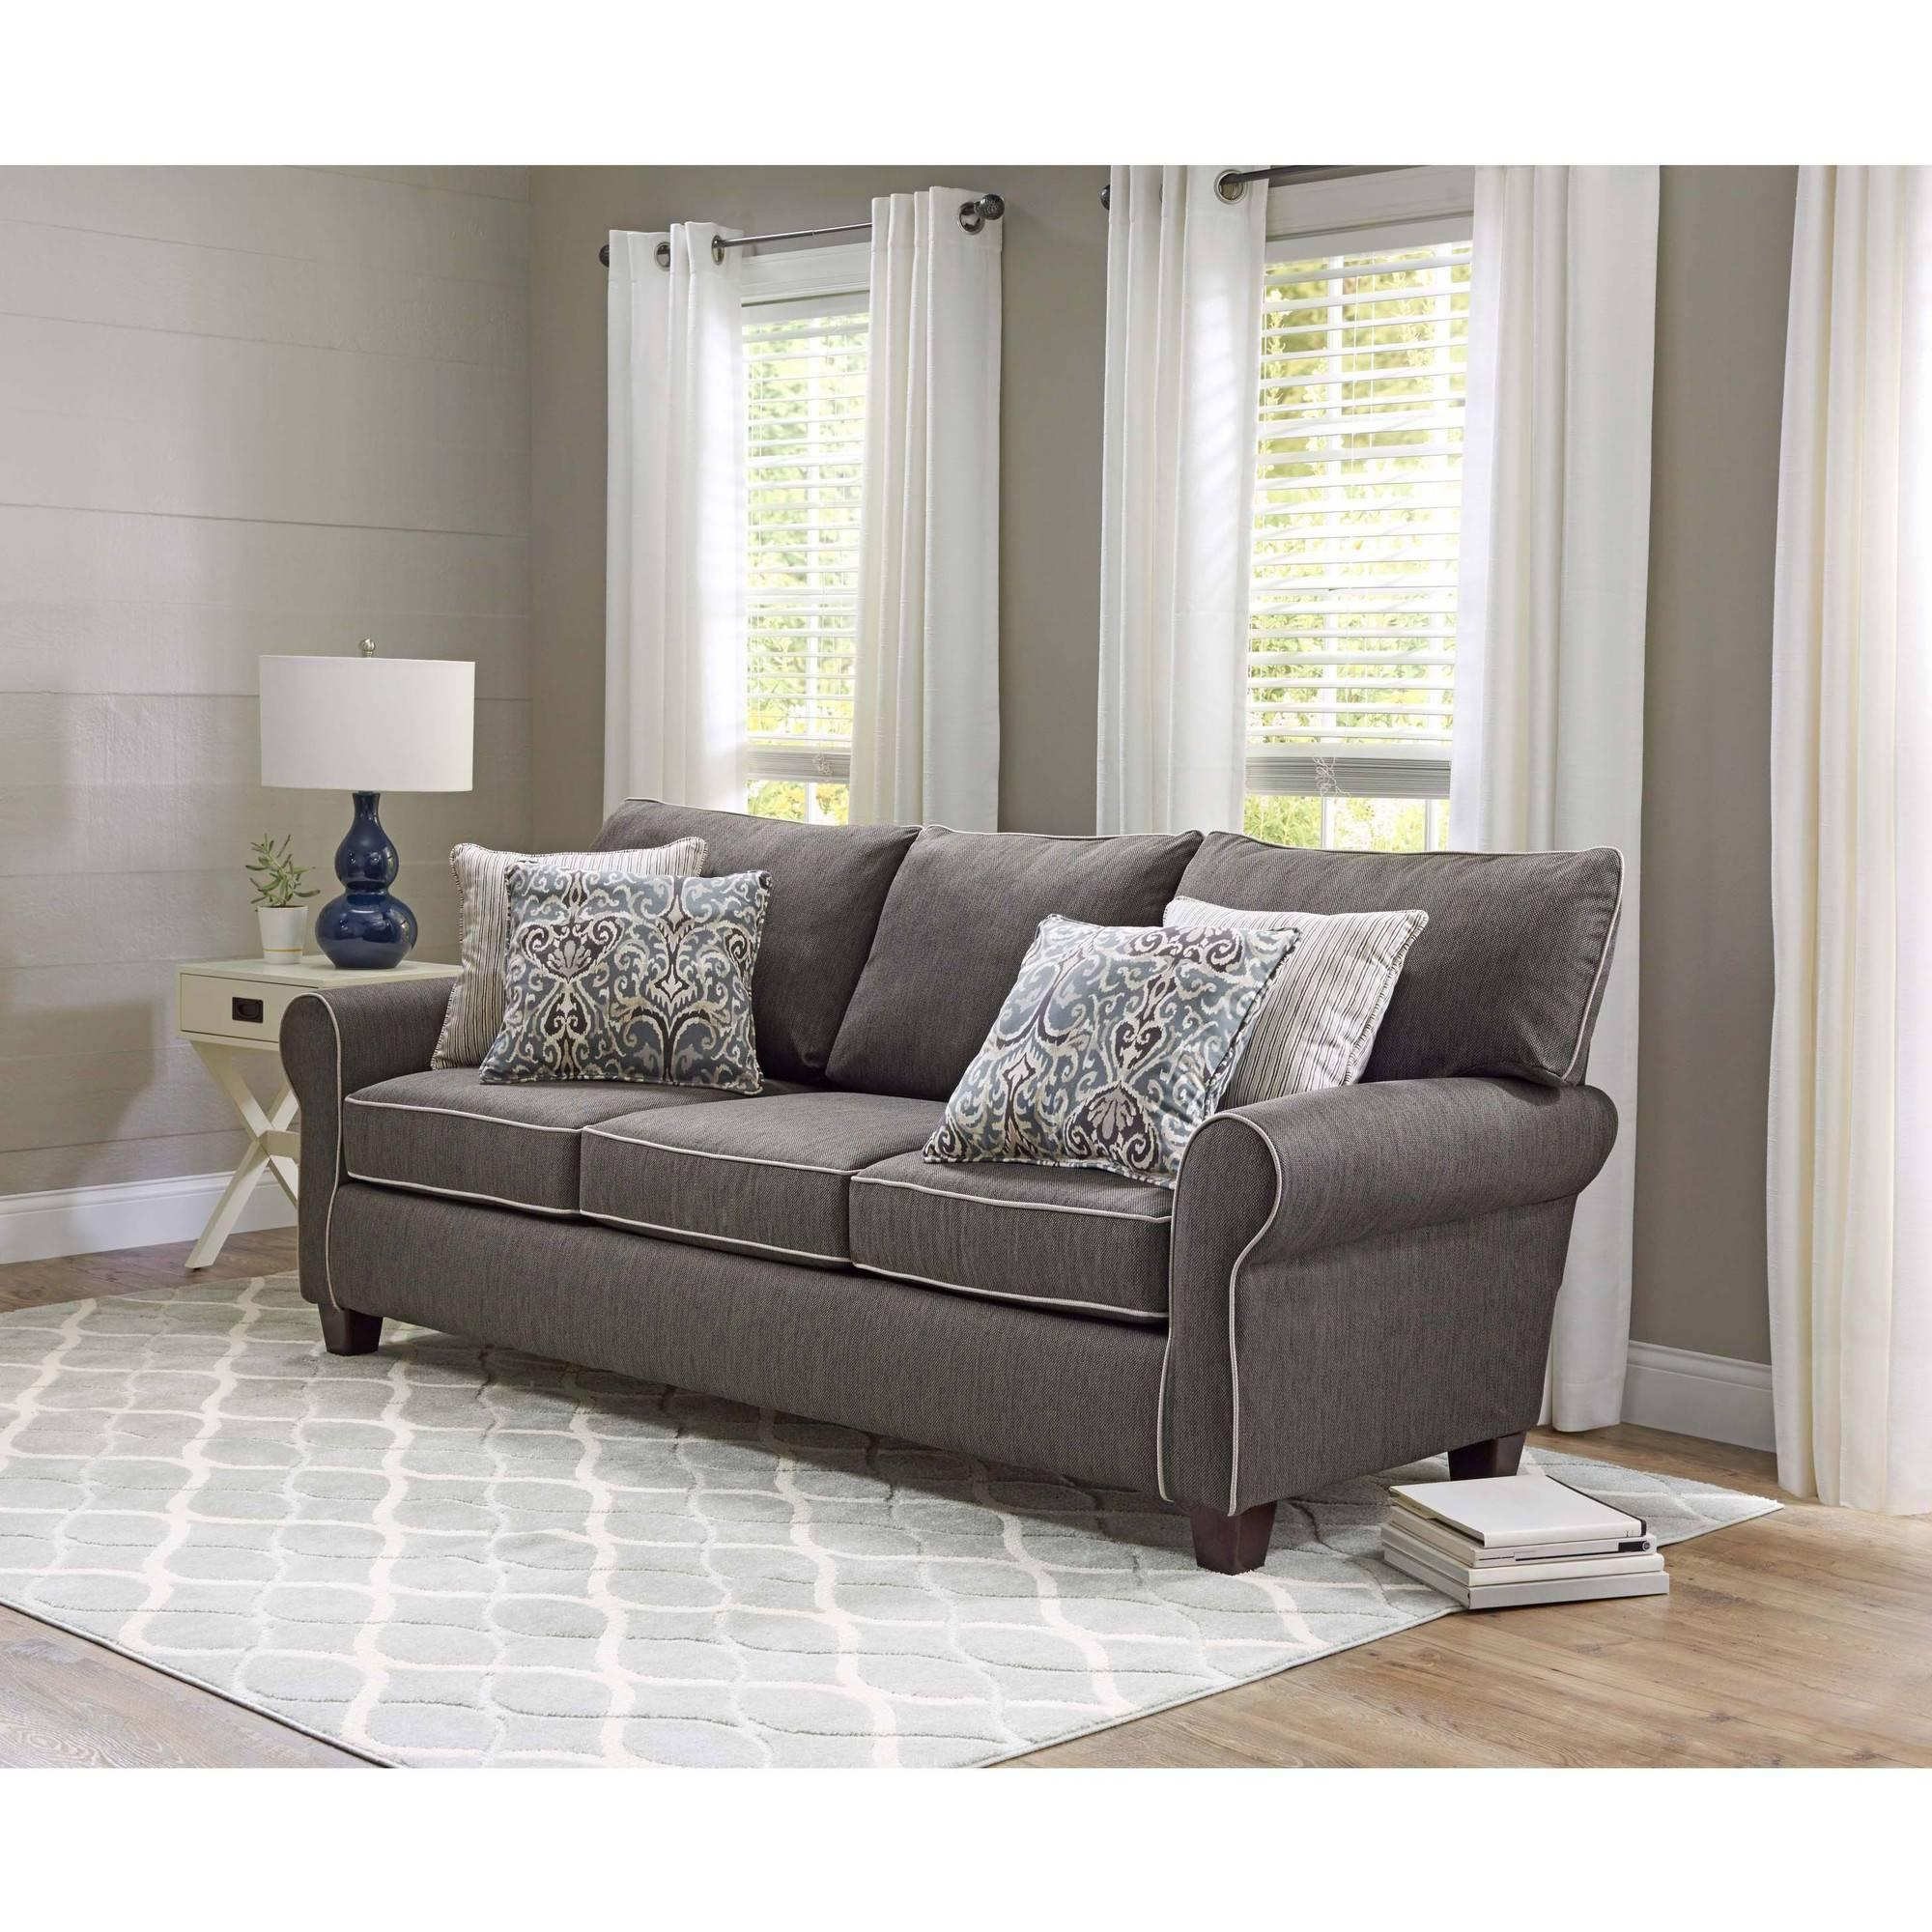 Sofa Ideas 3 Piece Sectional Sofa Slipcovers Explore 12 of 20